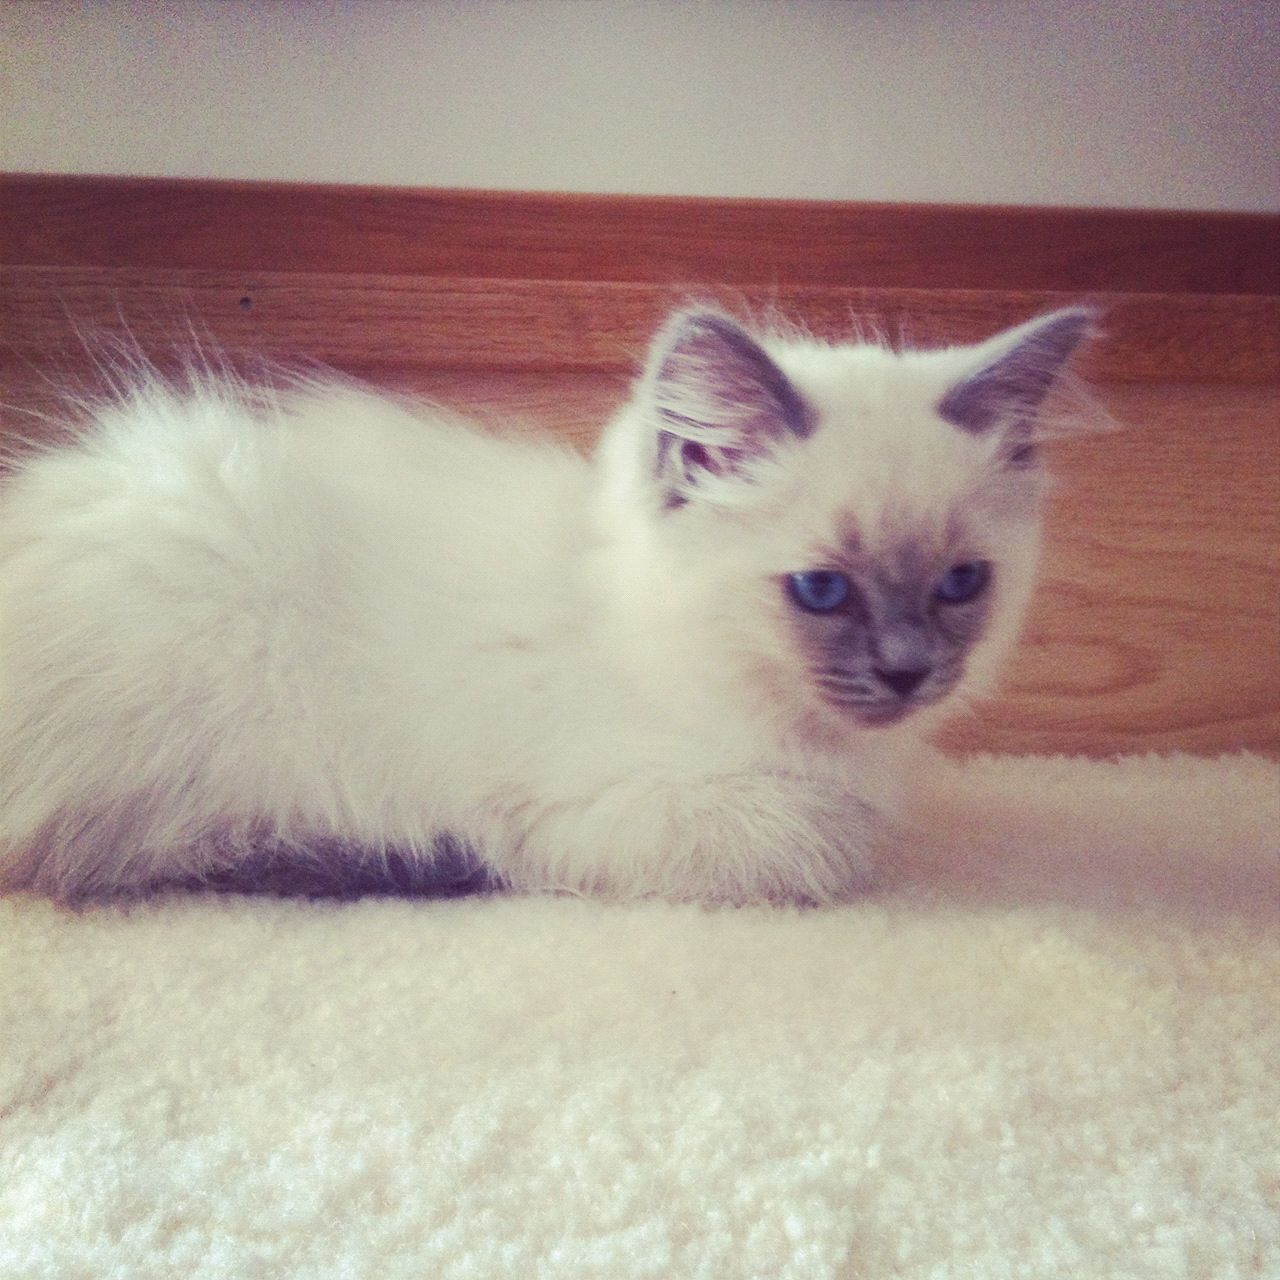 Owning A Ragdoll Cat Kittens And Puppies Pretty Cats Cats